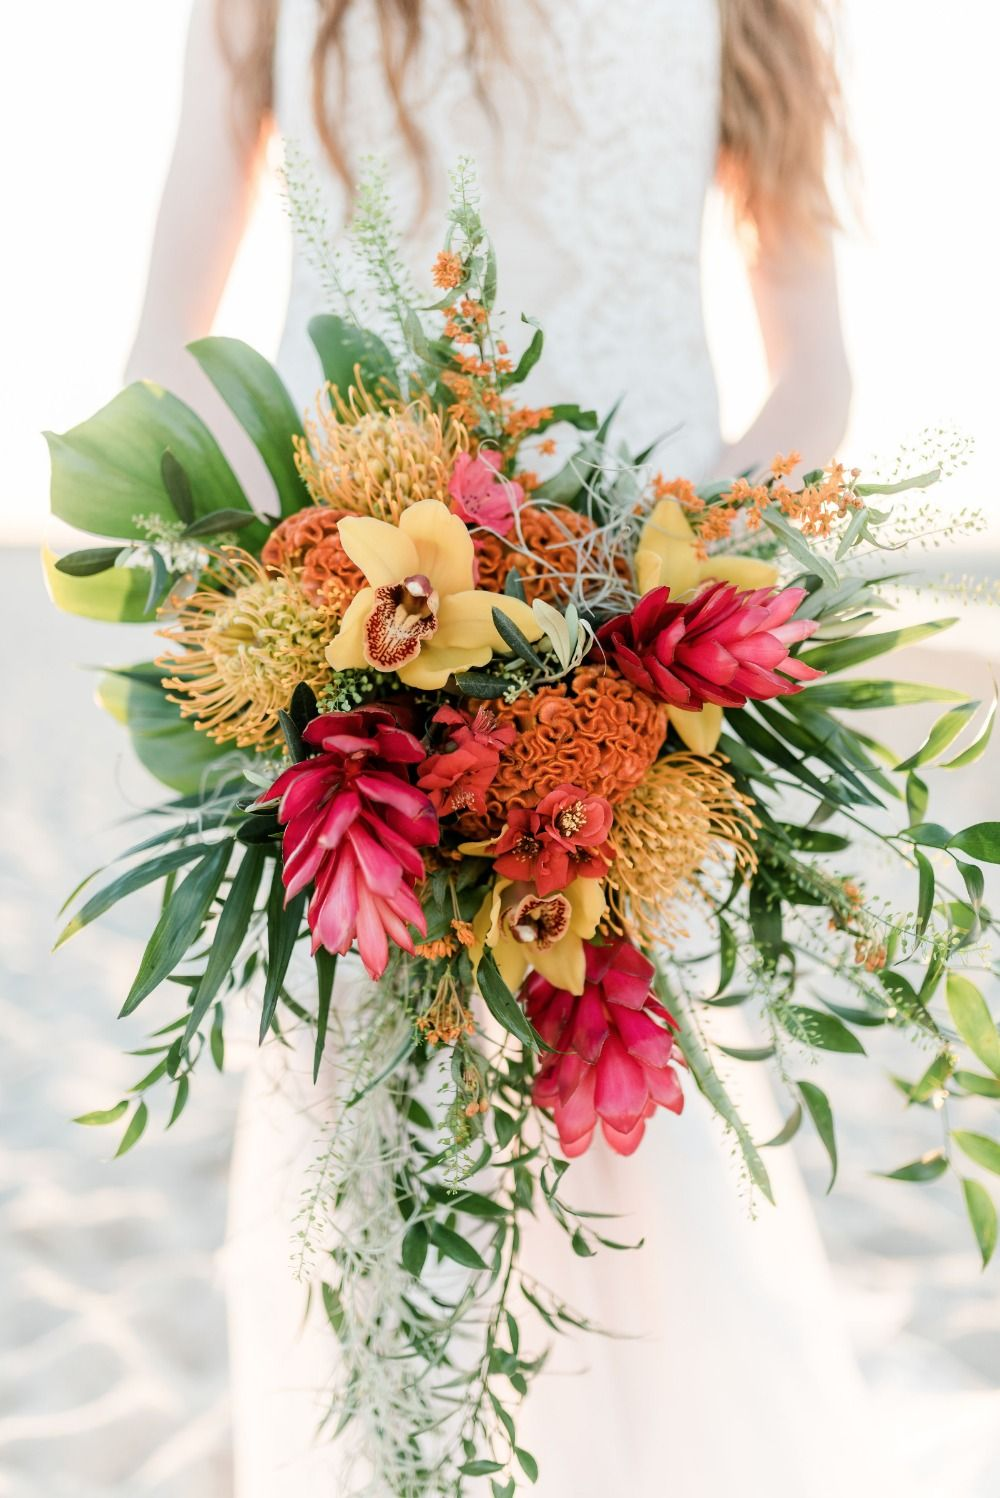 How to Create a Tropical Bouquet